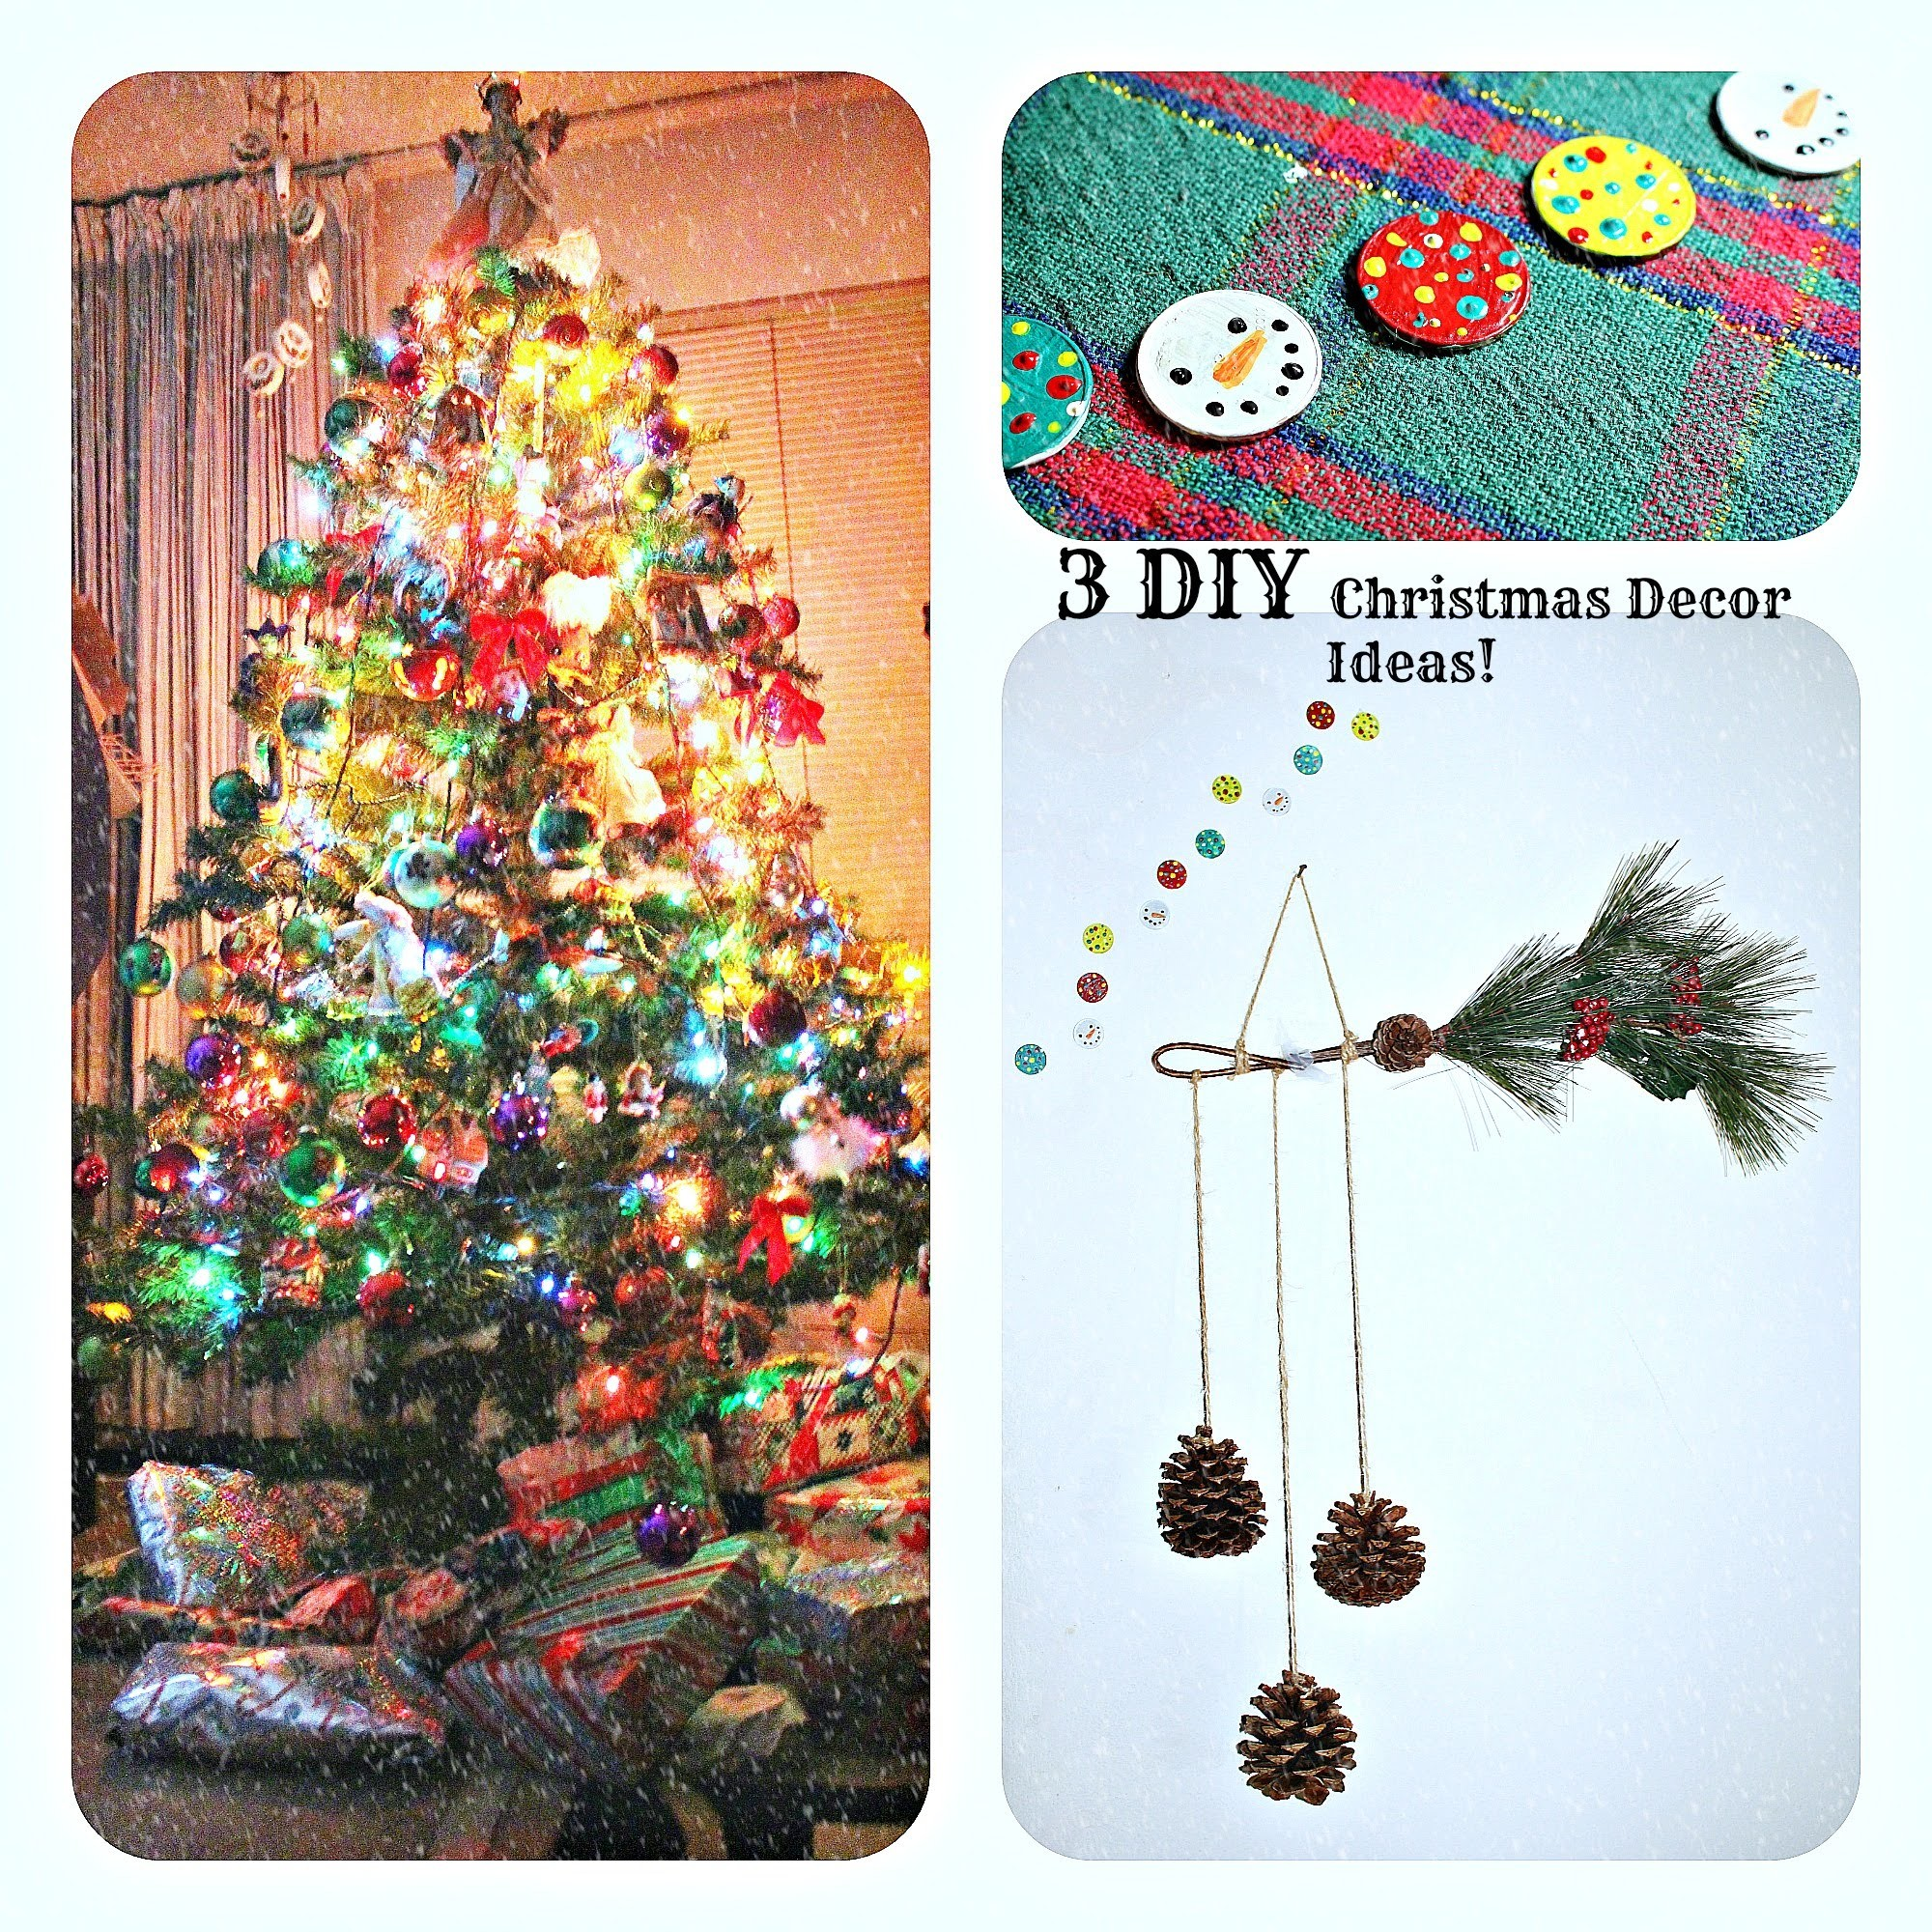 3 DIY Christmas Decor Ideas